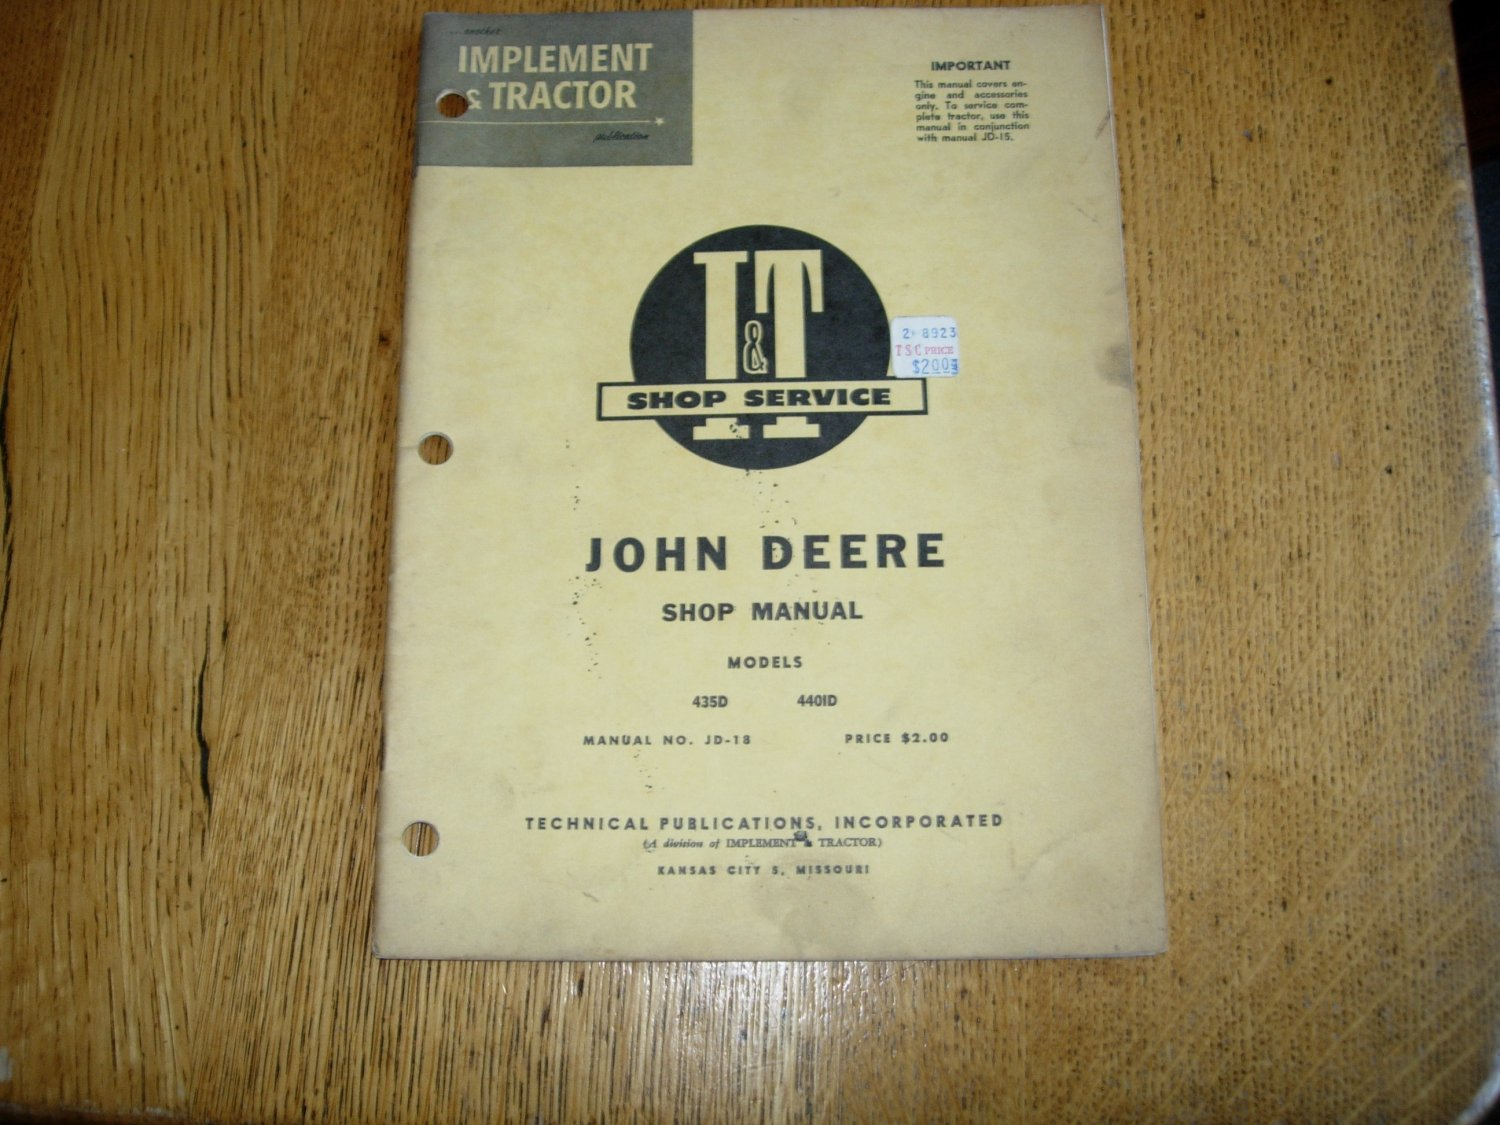 VINTAGE I&T SHOP MANUAL for John Deere 435D and 440ID TRACTORS, Manual No  JD-18.